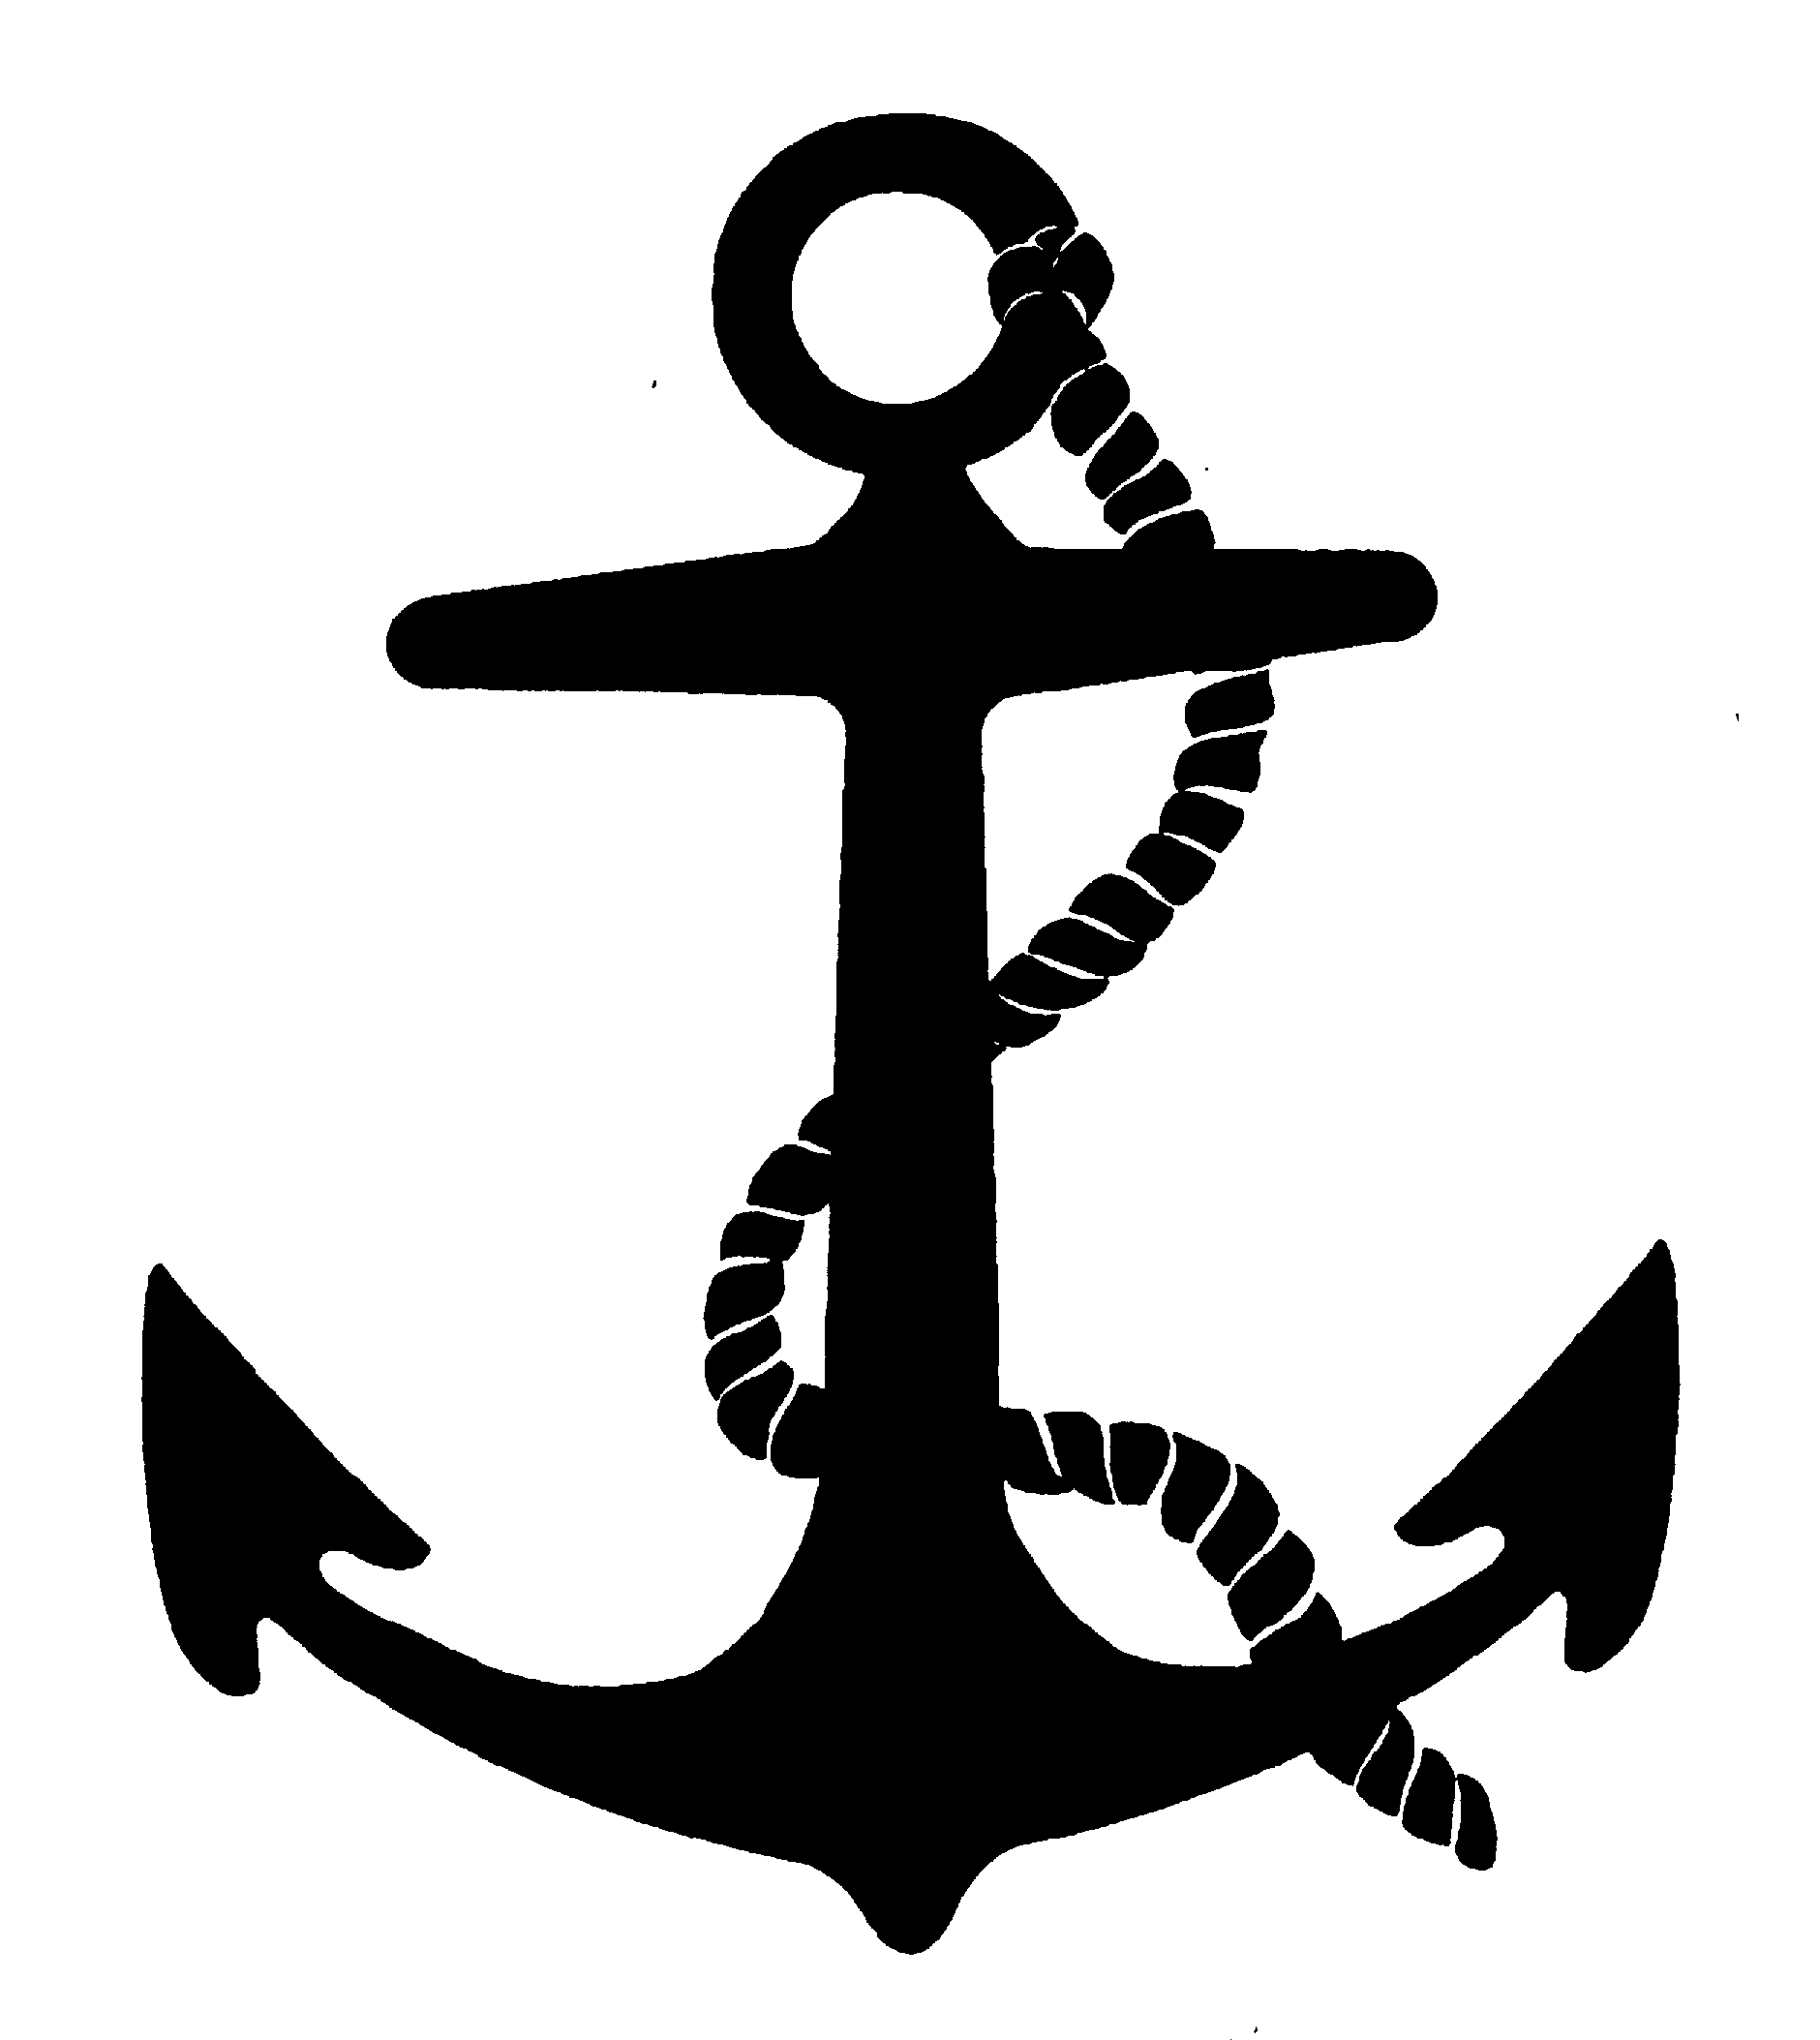 anchor clipart no background - photo #42